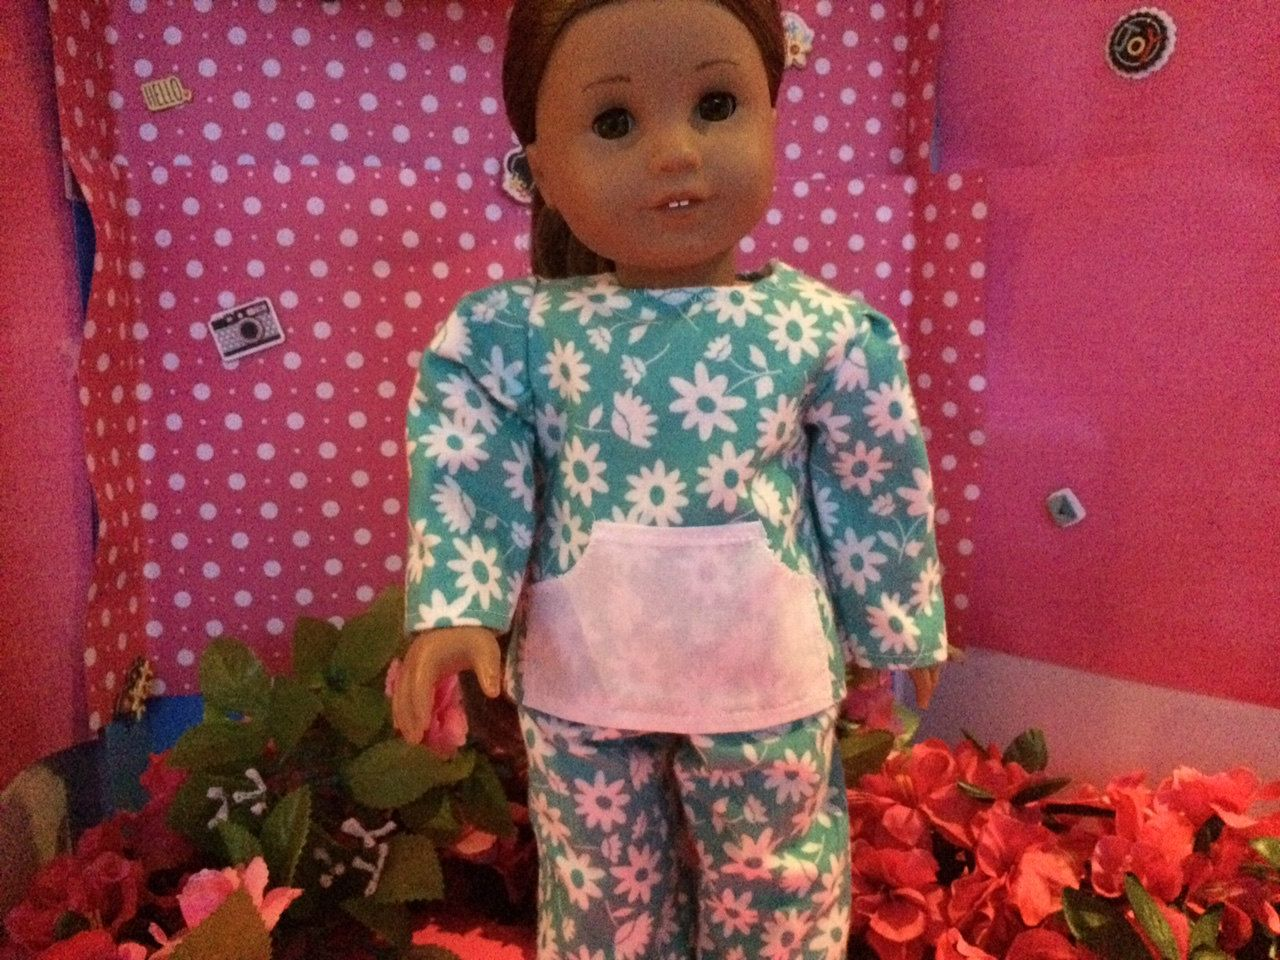 American Girl Doll Clothes, Handmade,Fits 18 inch Doll. 2pc Pajama Set.  Color: Blue and White Flower Print by BlueCowDesigns on Etsy